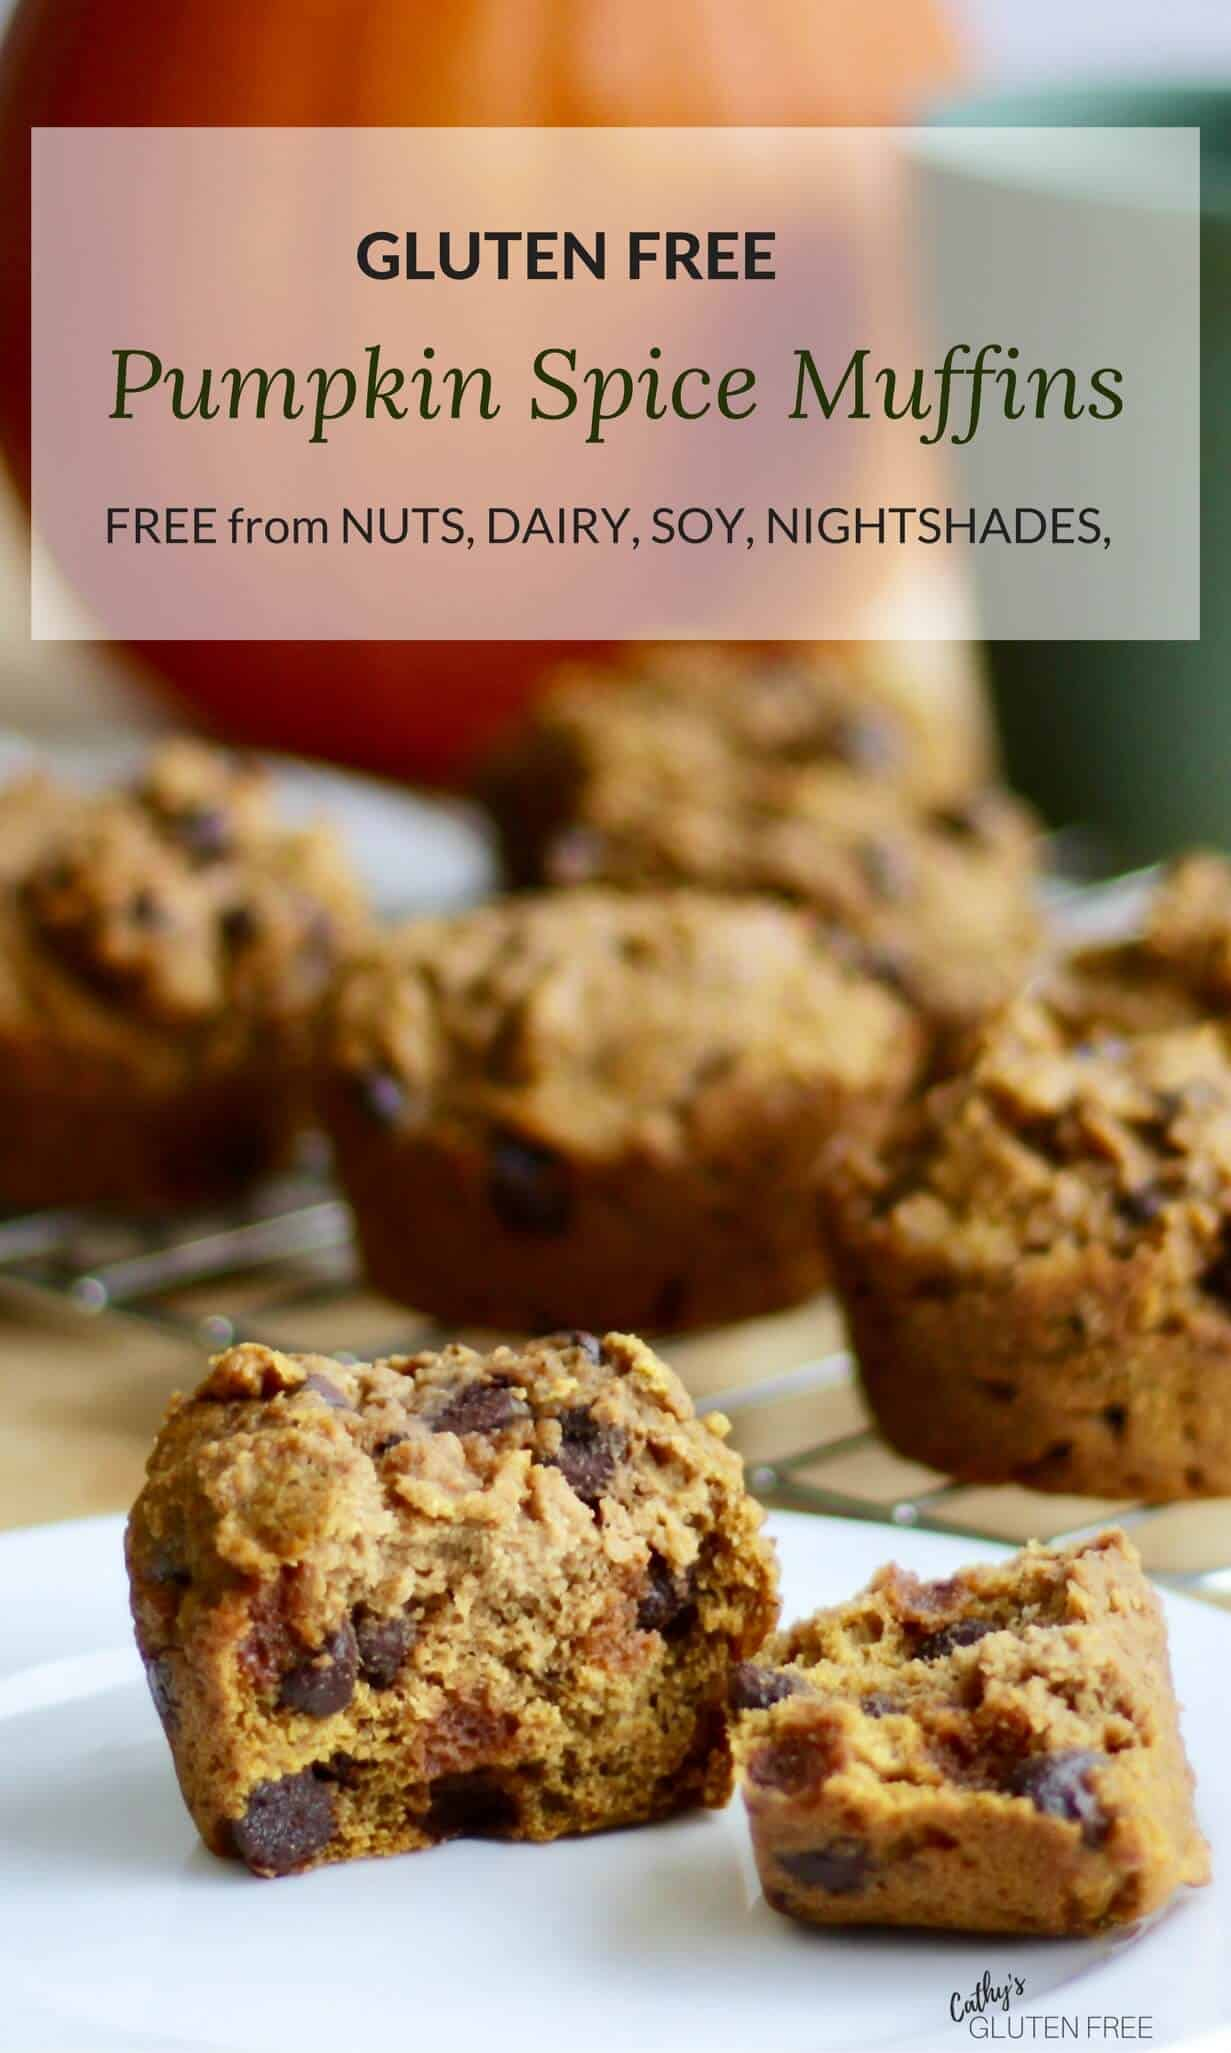 Gluten Free Pumpkin Spice Muffins | Free from nuts, soy, corn, nightshades CathysGlutenFree.com #healthy #easy #gluten free #homemade #with chocolate chips